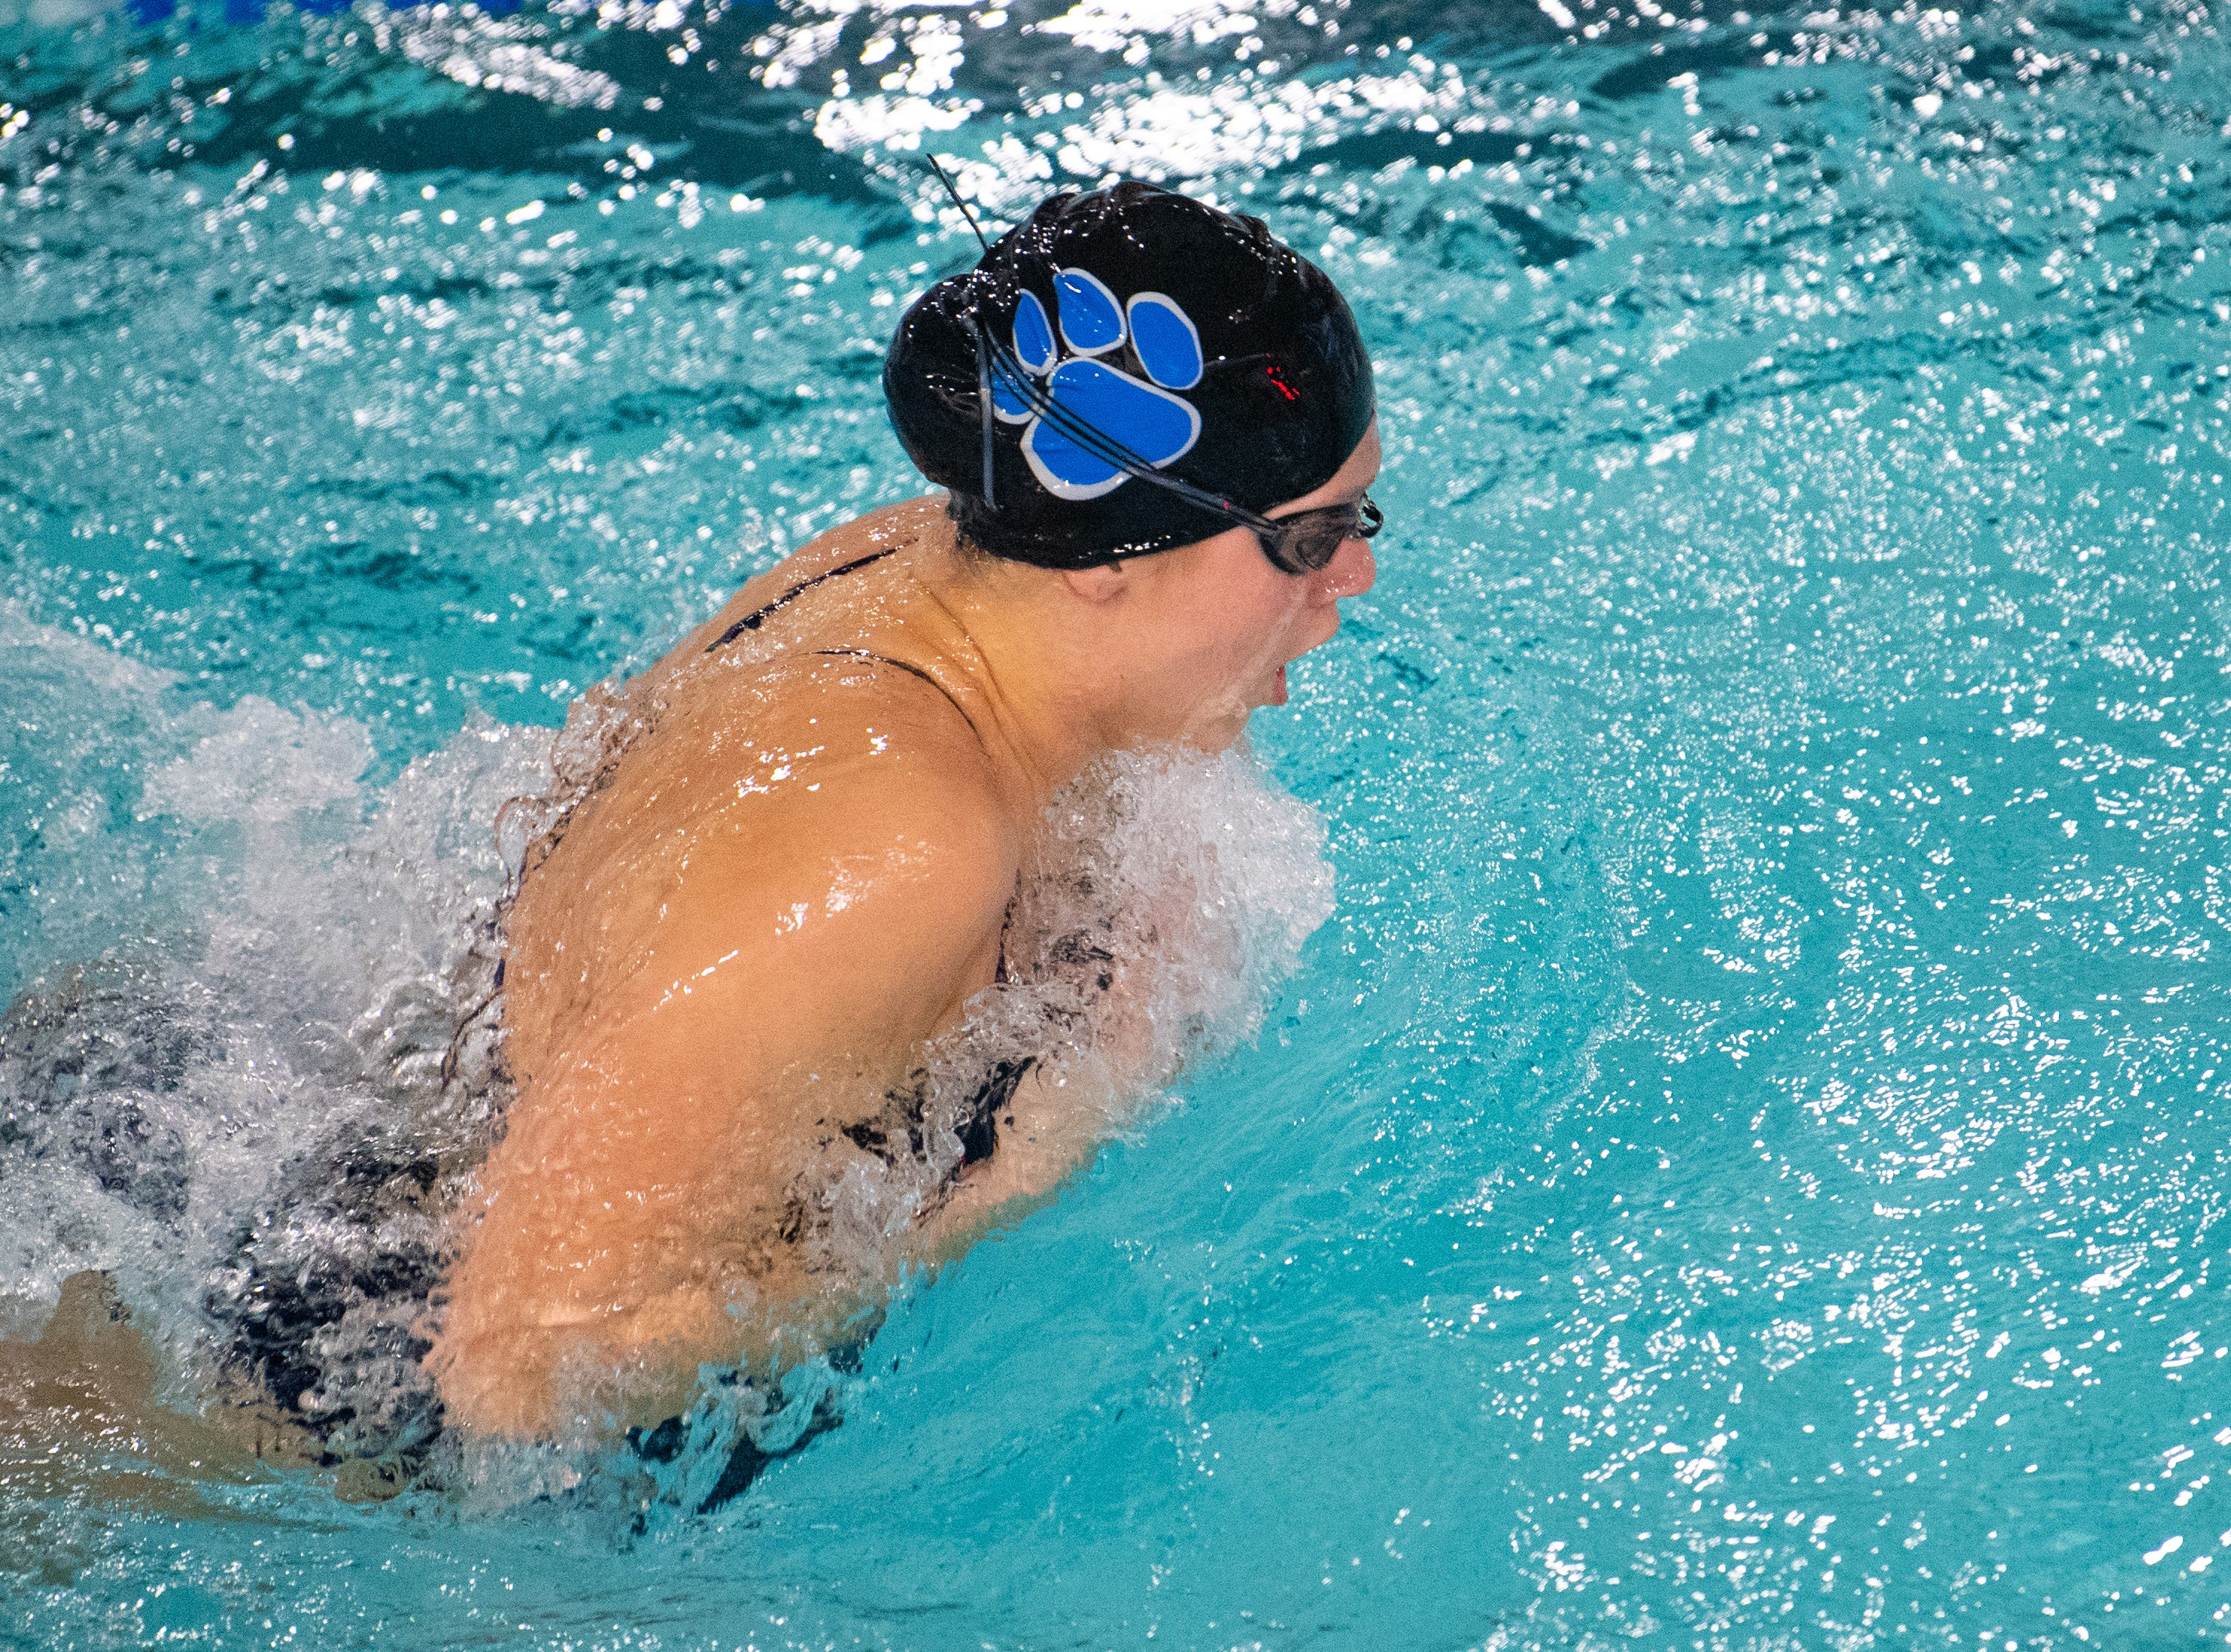 Araby Marston keeps a fast pace during the boys' and girls' swim meet between Dallastown and Central York at Dallastown Area High School, January 10, 2019. The Panthers defeated the Wildcats 93 to 77 and the Lady Panthers defeated the Lady Wildcats 96 to 74.